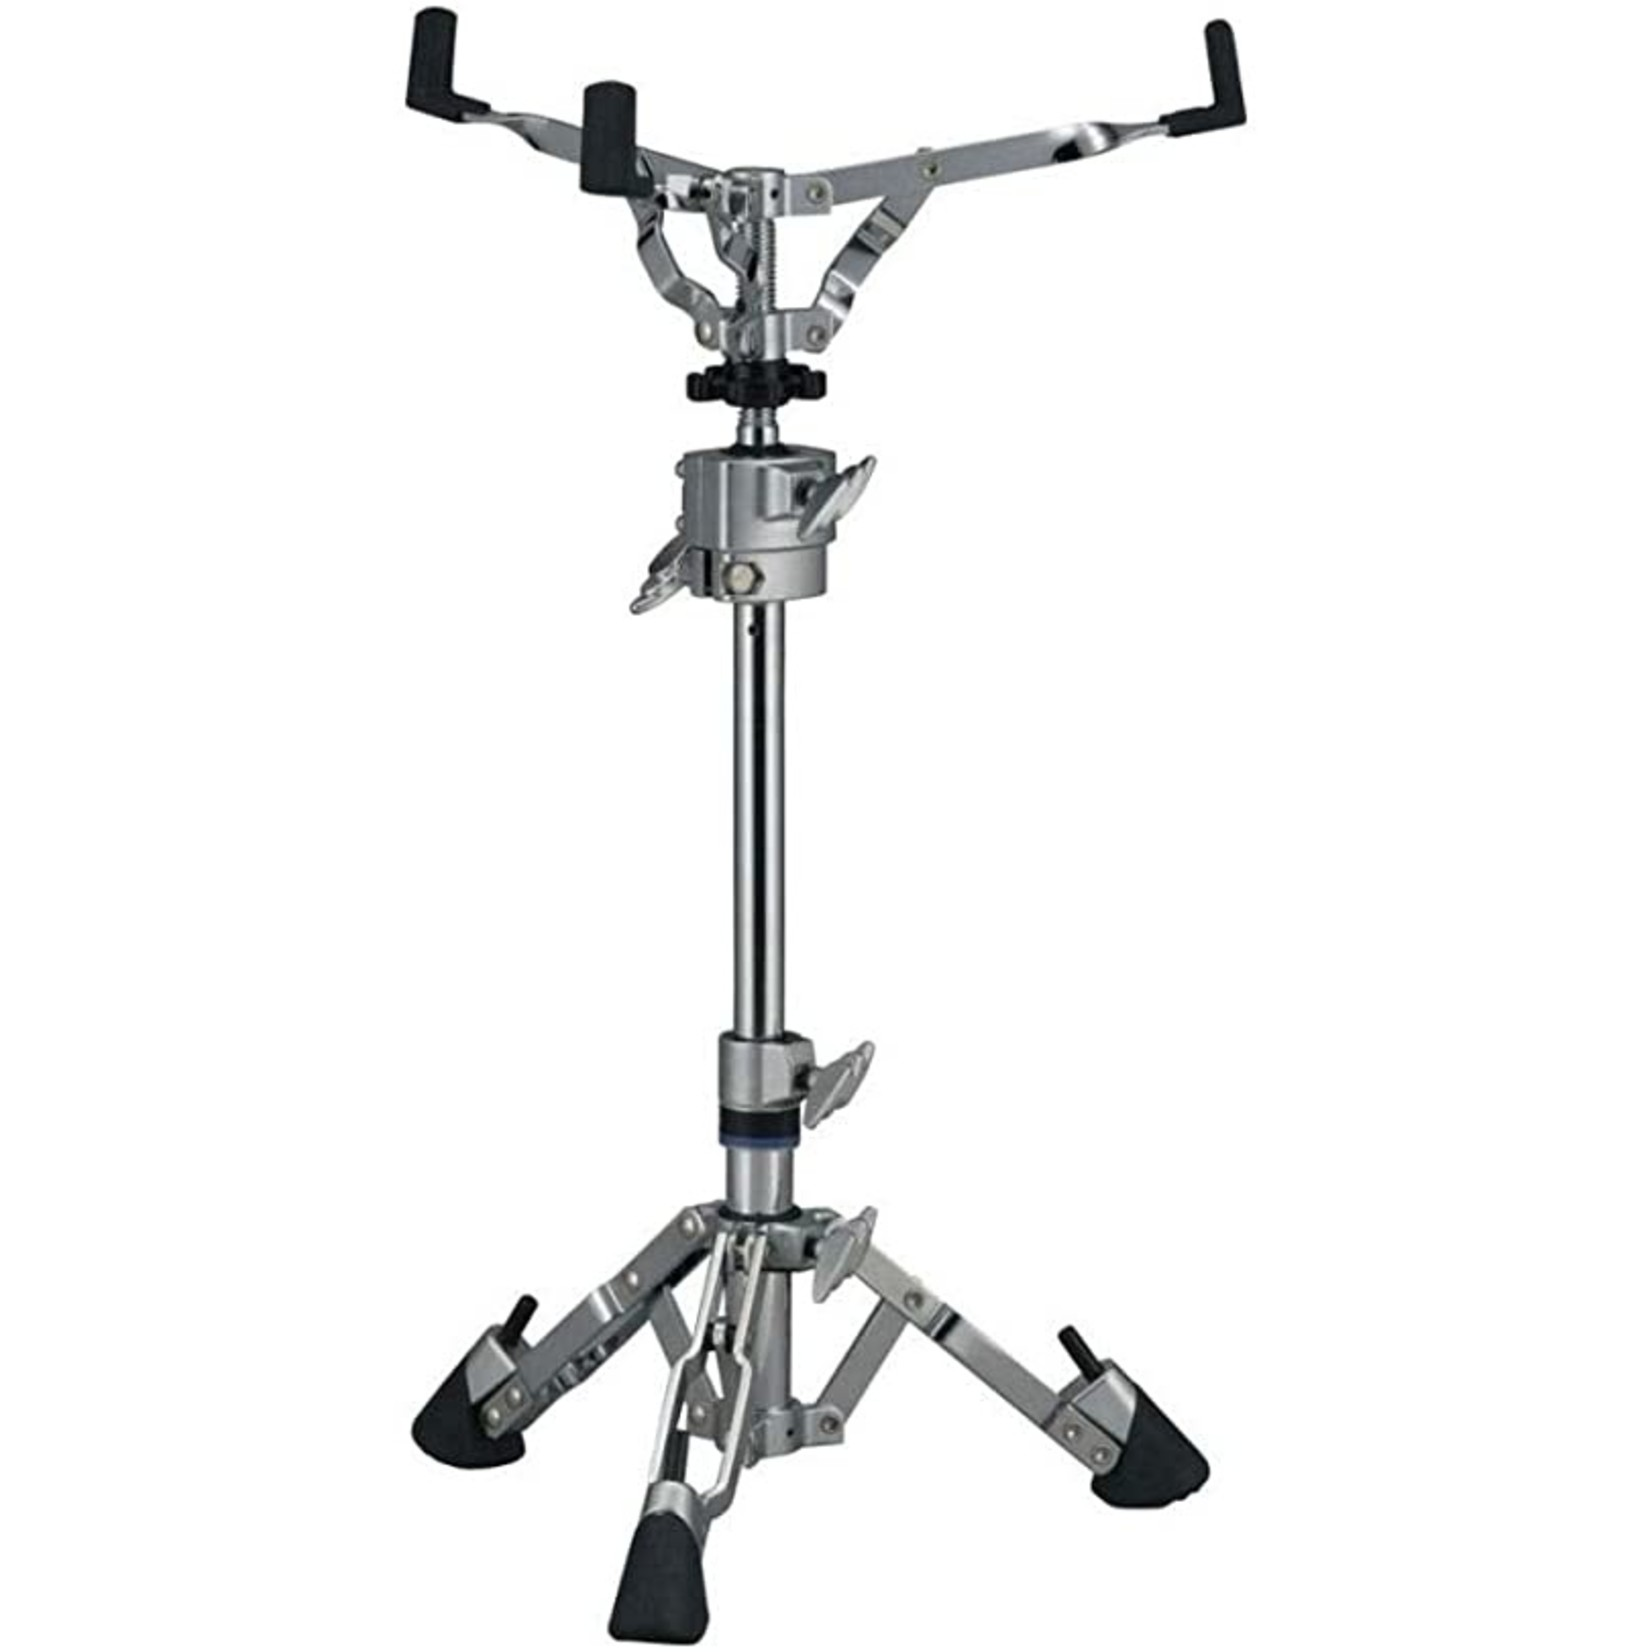 Yamaha Yamaha Snare Drum Stand - Heavy Weight - Double Braced - Ball And Socket Tilter